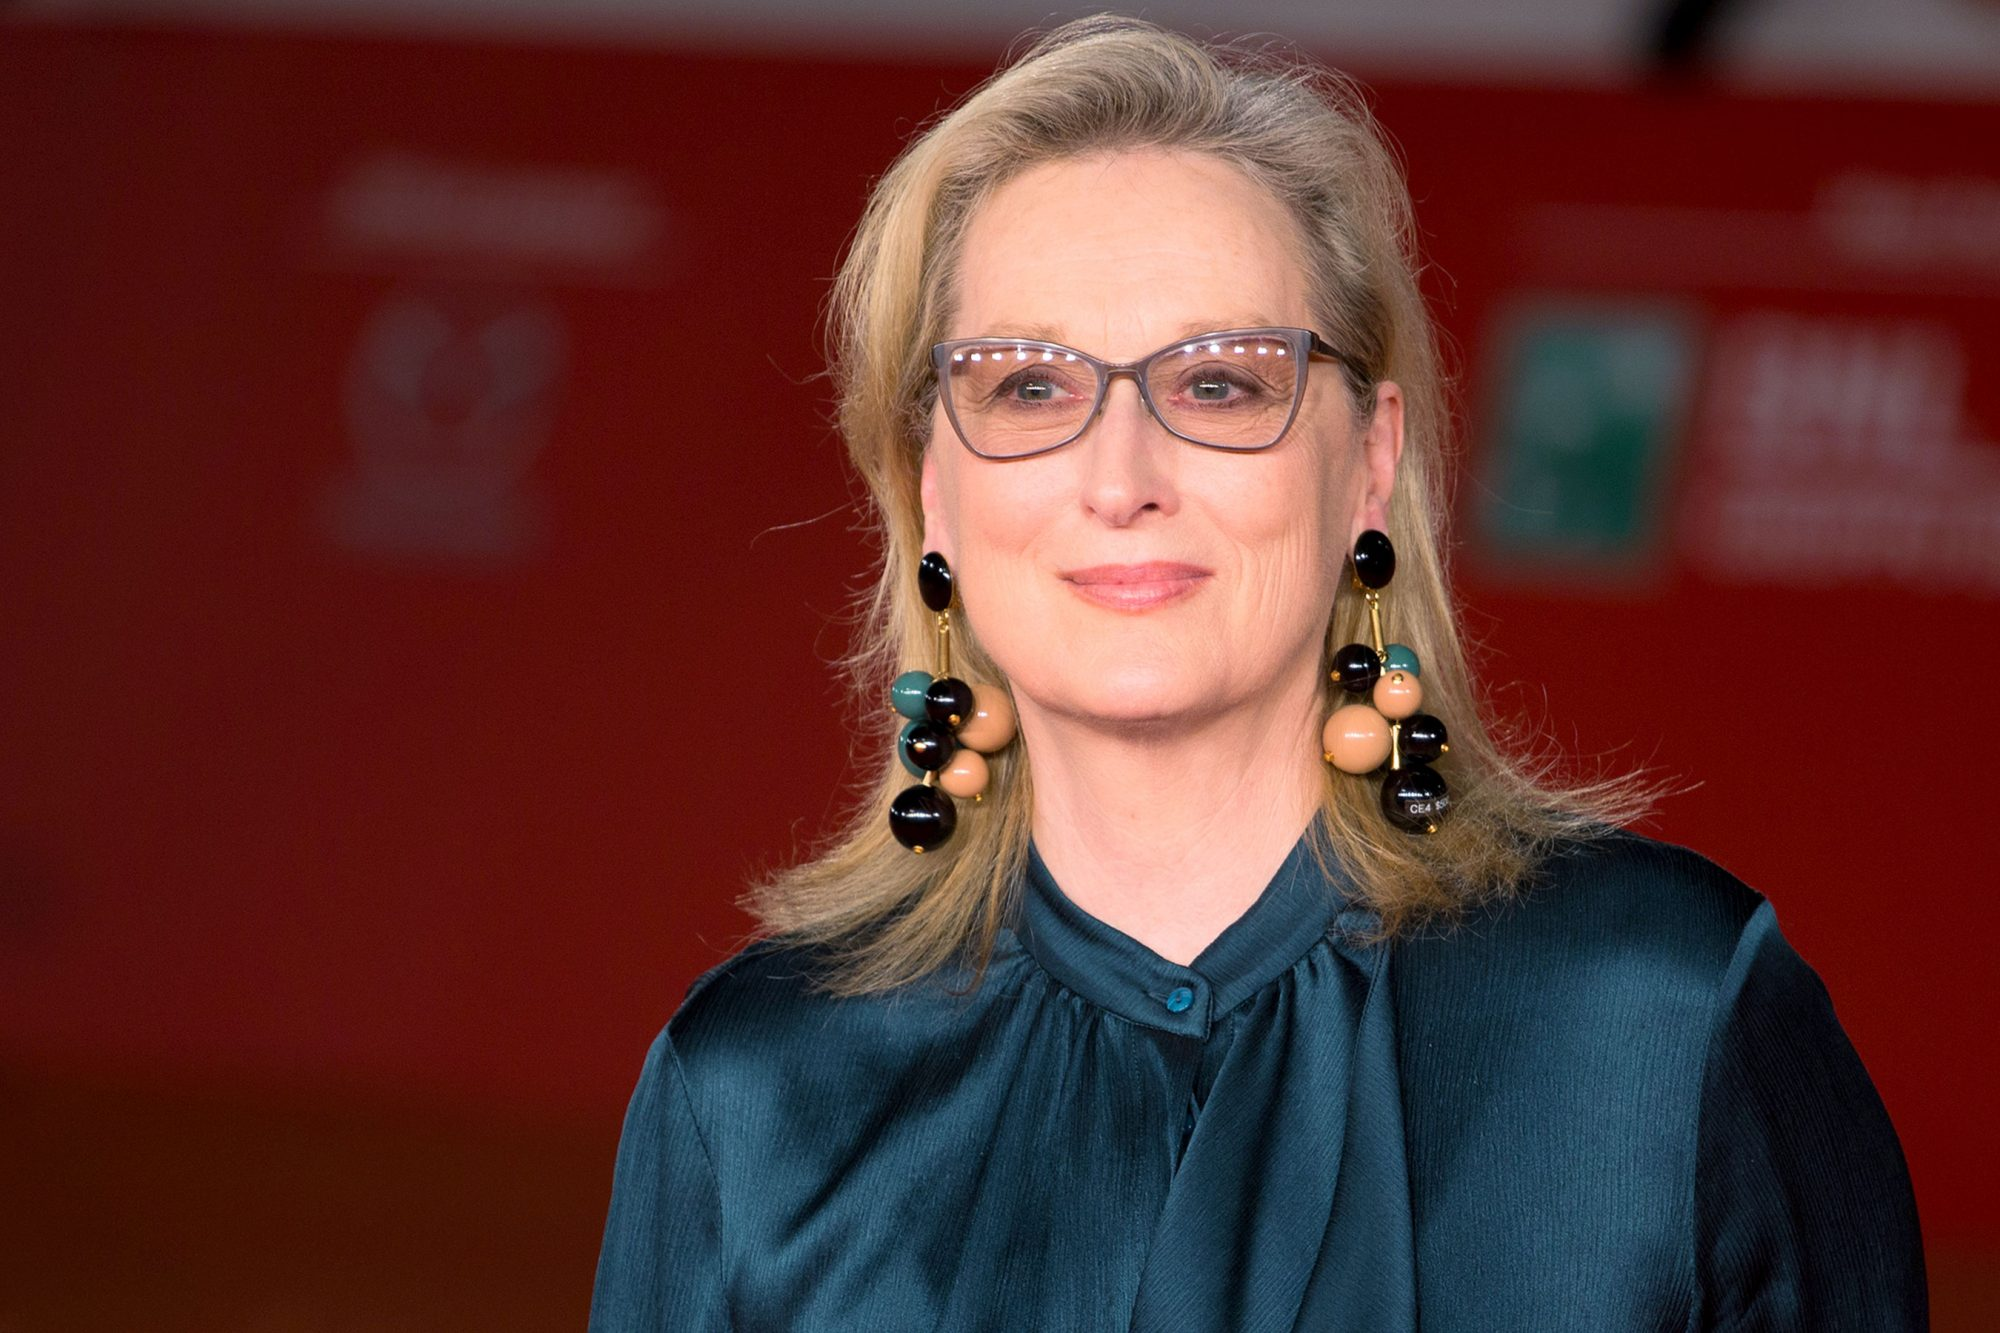 American actress Meryl Streep lights up the Red Carpet at